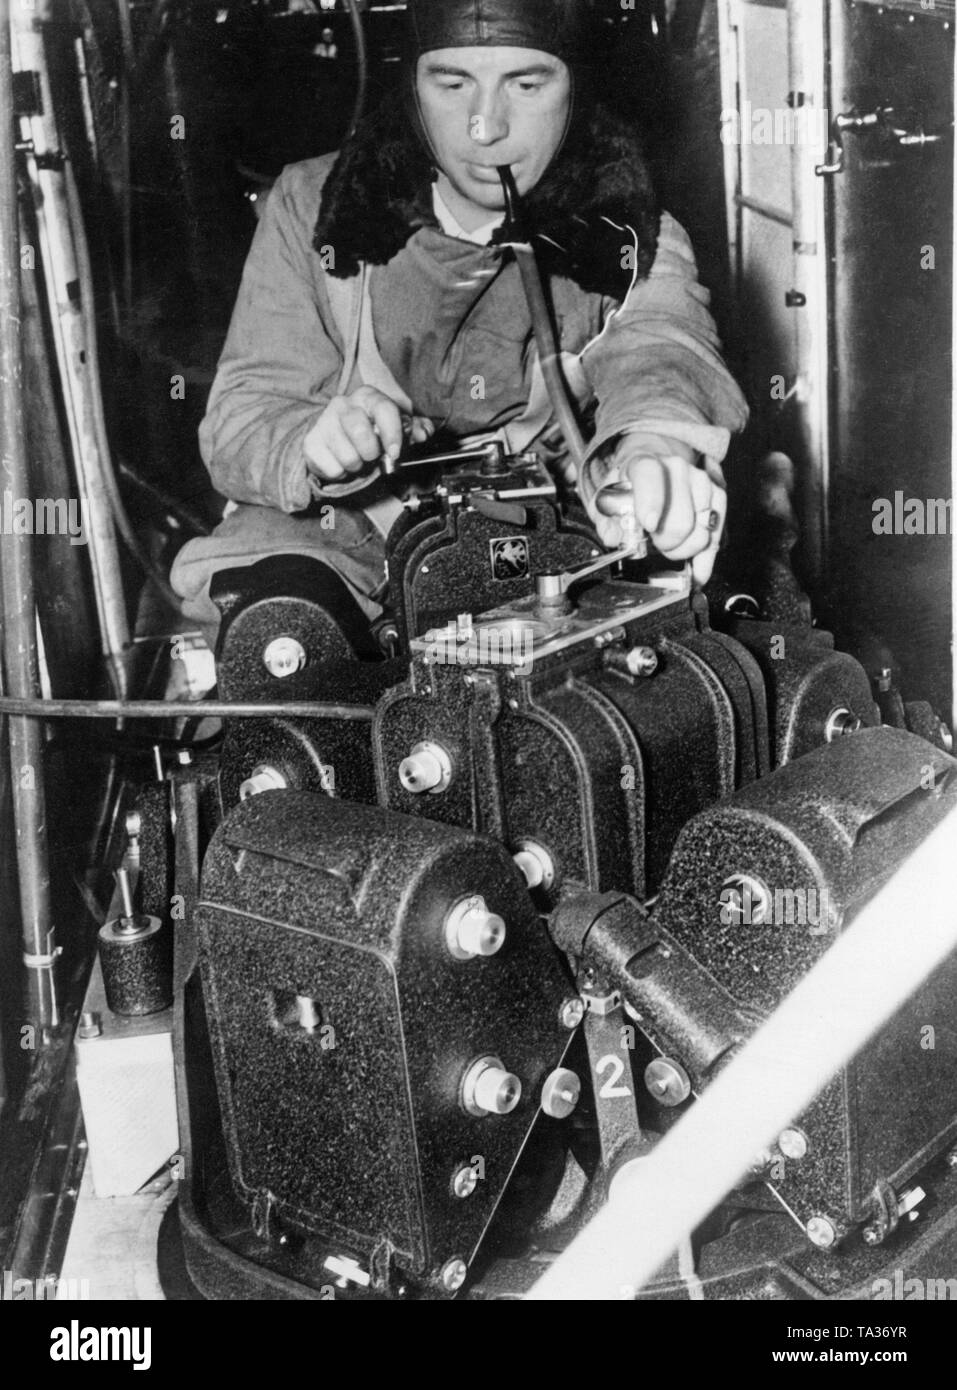 Photo of a camera-man operating a giant aerial camera. Here, the aerial camera was used to make a new map of California. Due to the innovative ten-lens system, an area of ??2000 sq. kms could be shot from the highest possible altitude. The cameraman must use an oxygen device for an easy breathing due to the height reaching up to the stratosphere. - Stock Image